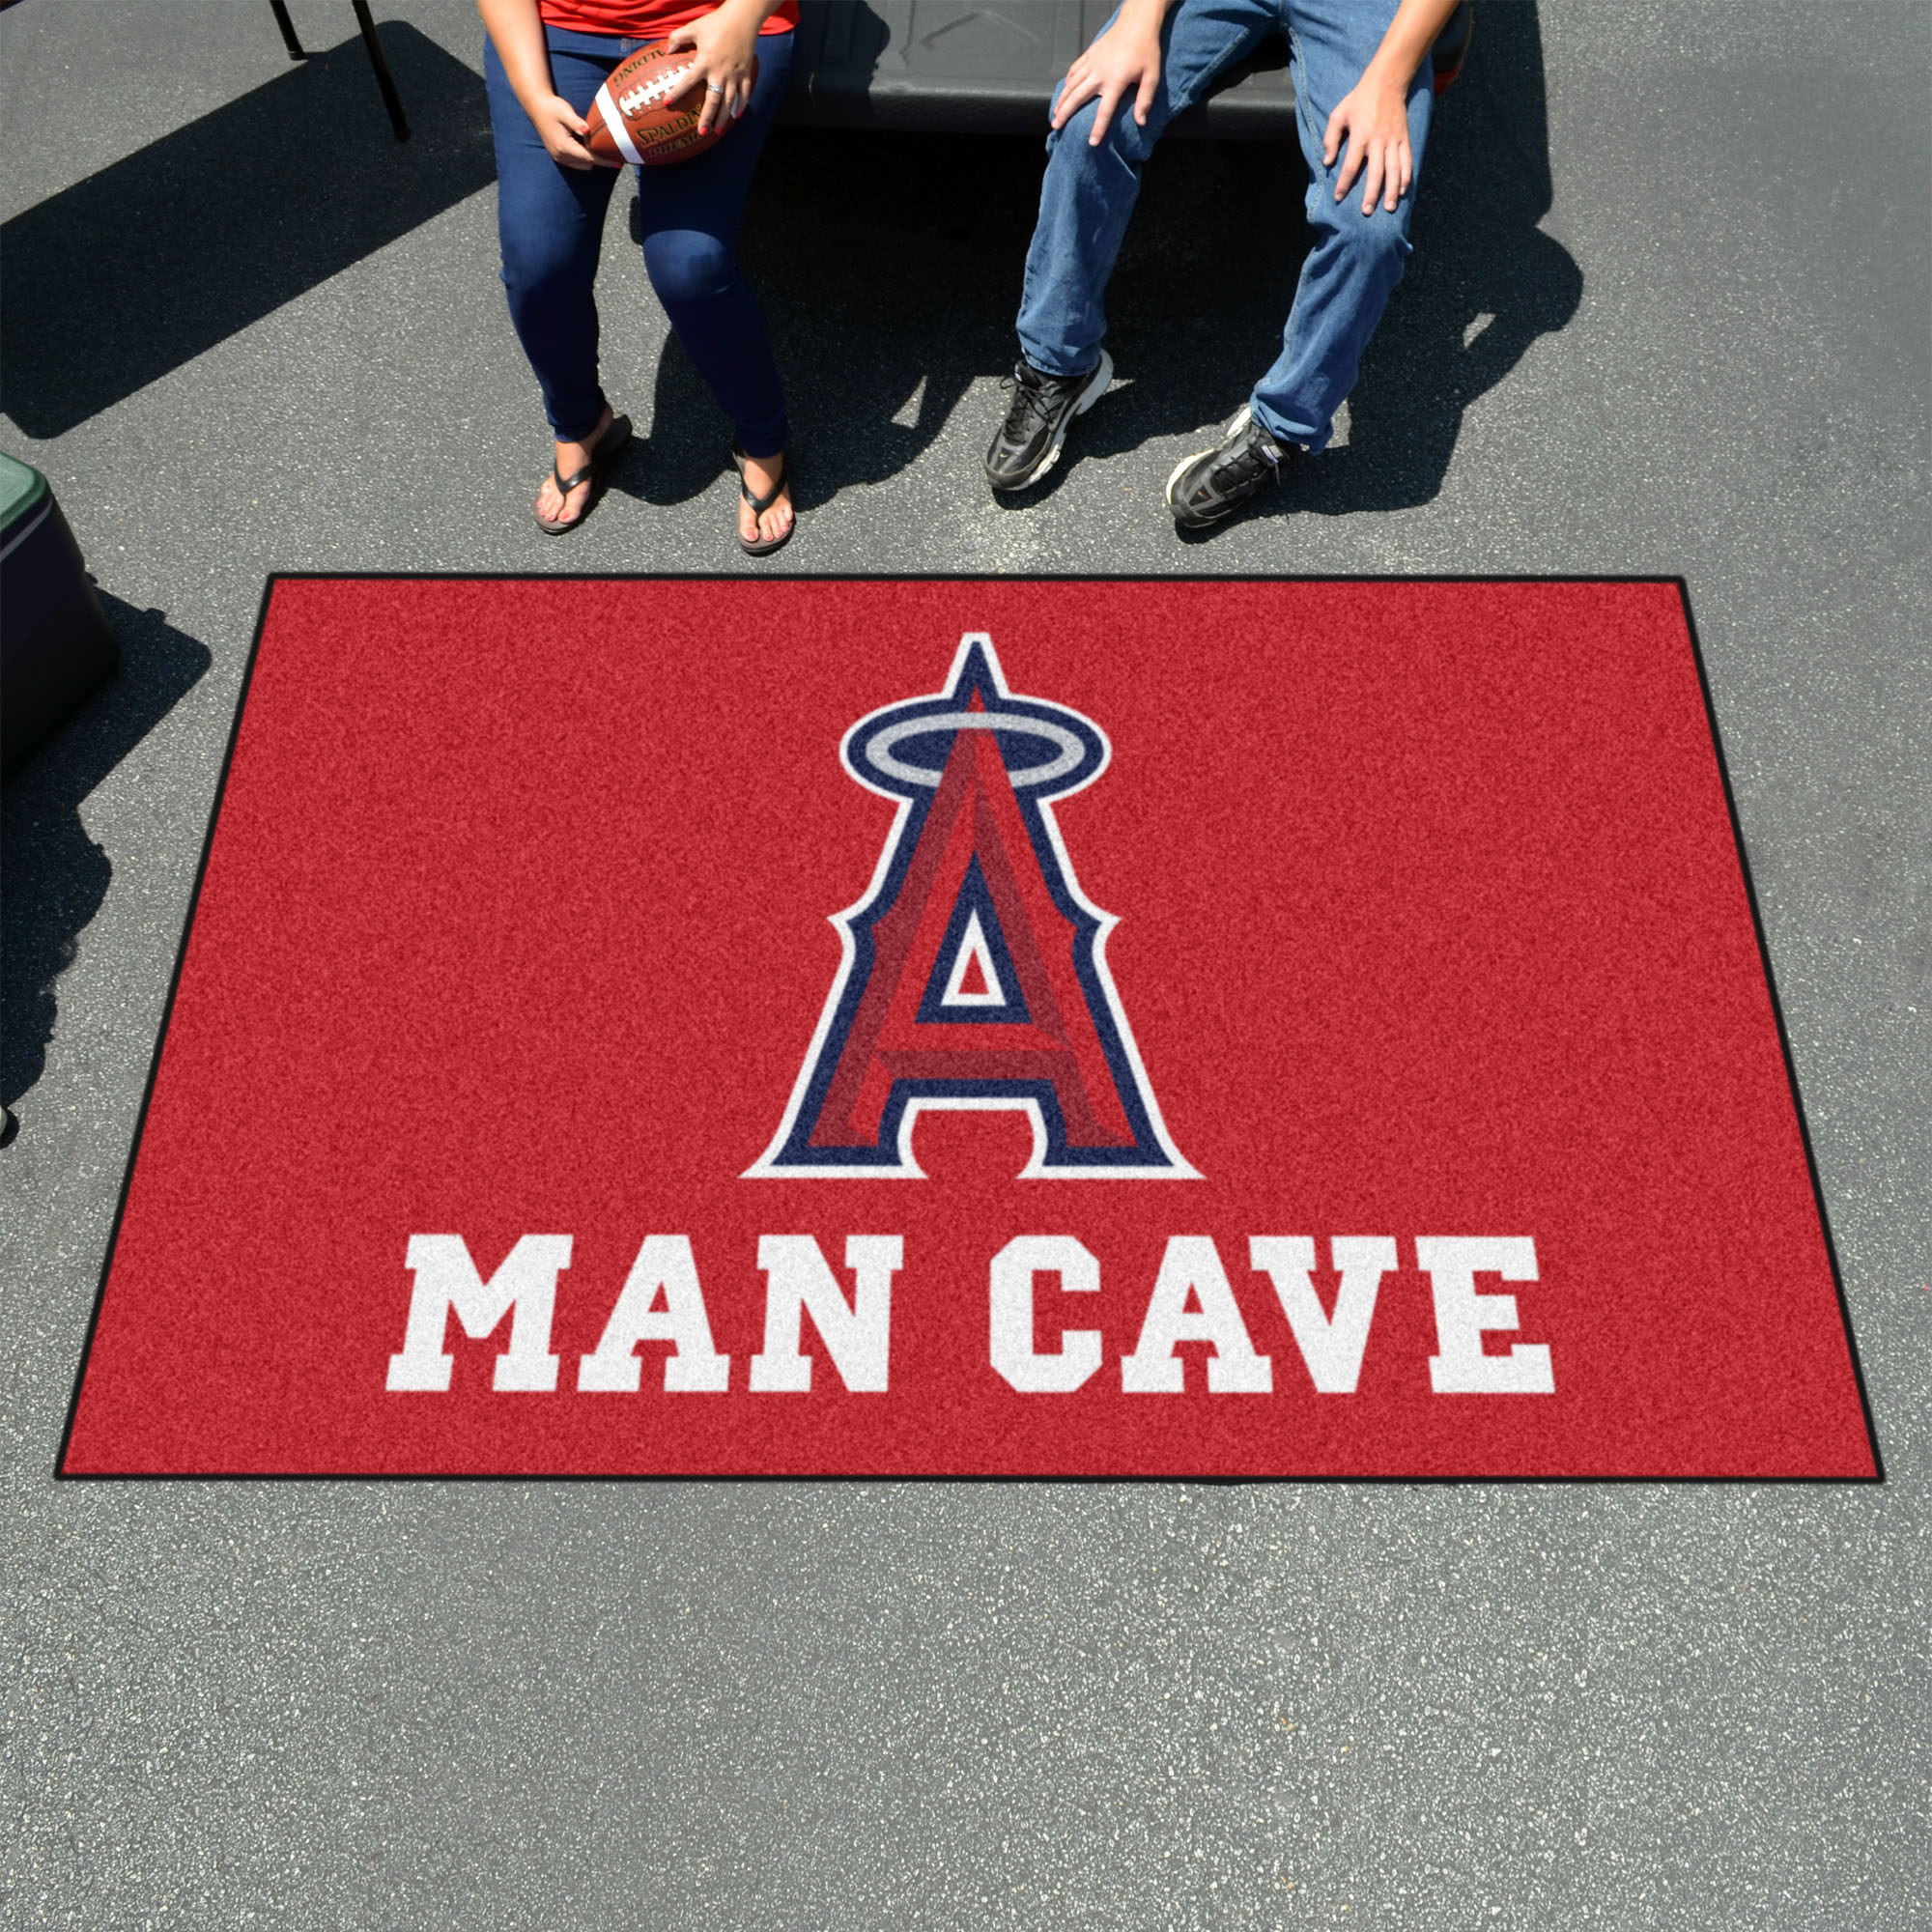 Los Angeles Angels UTILI-MAT 60 x 96 MAN CAVE Rug